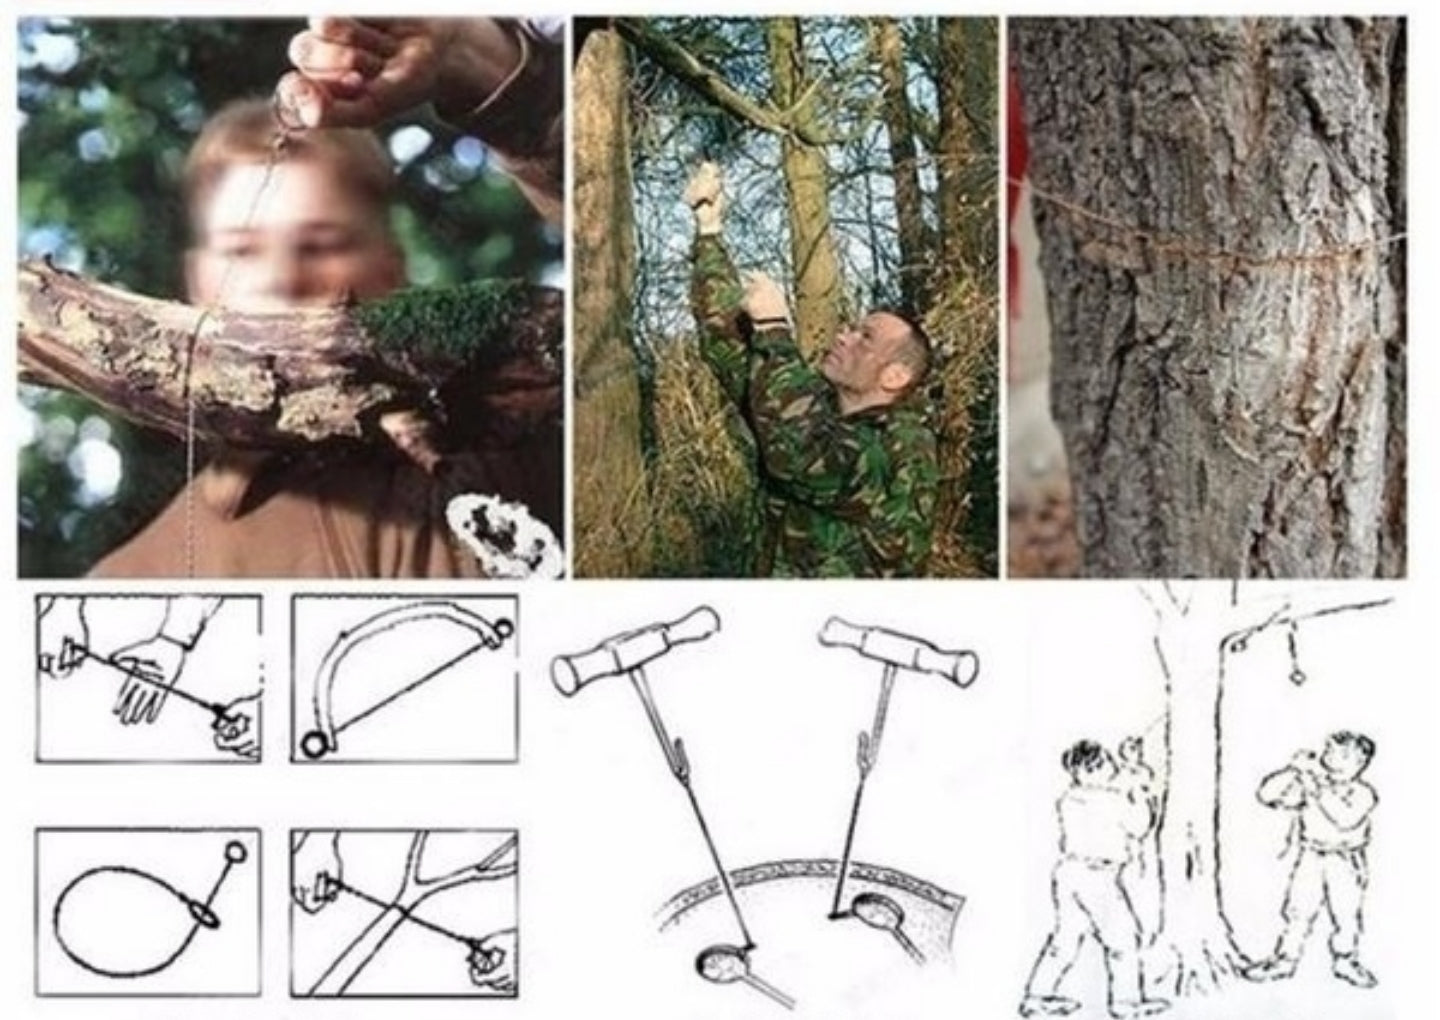 Camping Chain saw